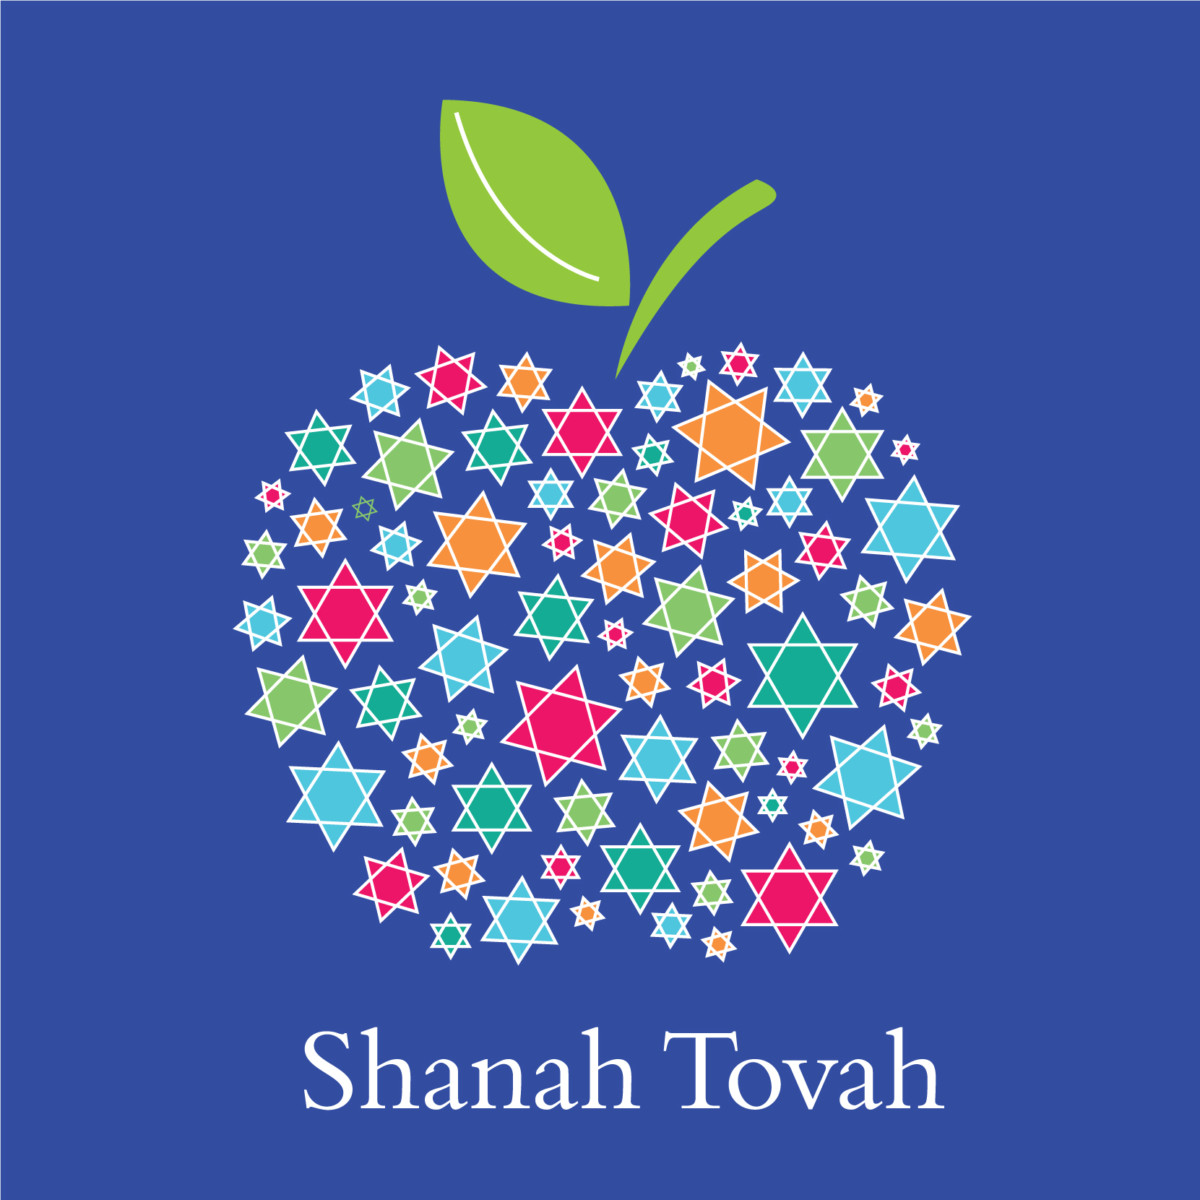 Rosh Hashanah Greetings Presented By The Molly Claude Team